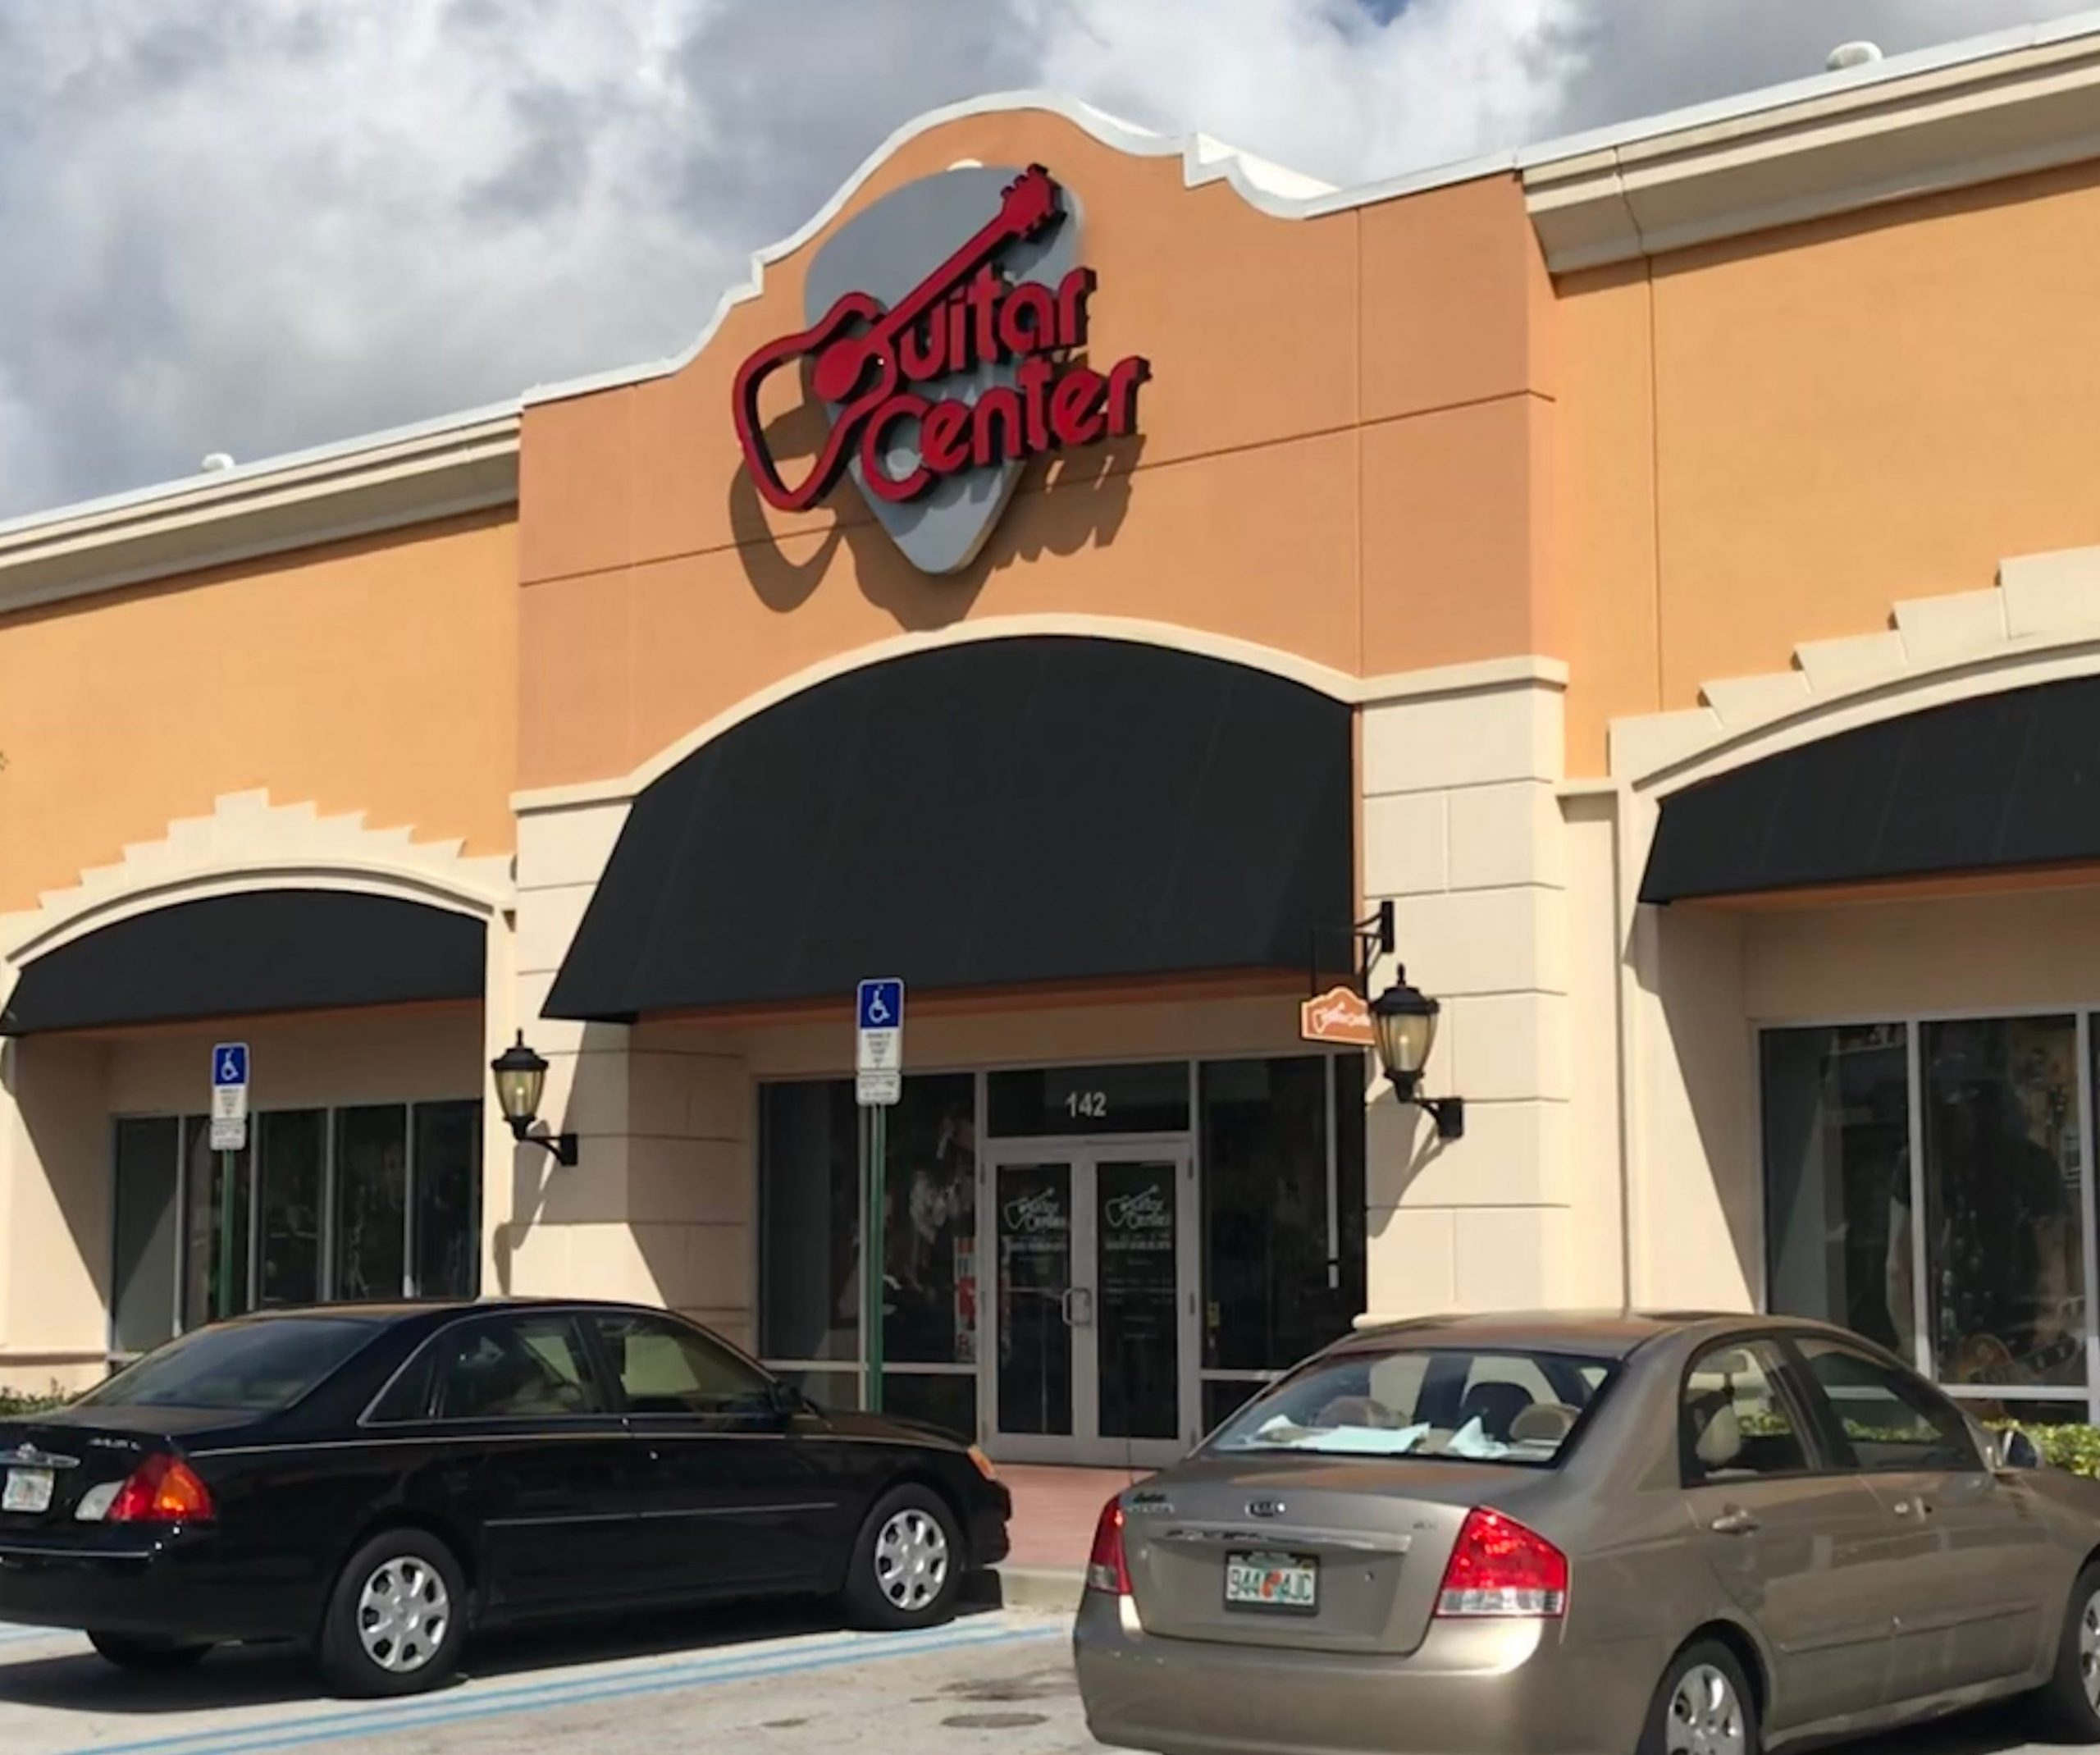 Musical instrument retailer Guitar Center to file for Chapter 11 bankruptcy protection